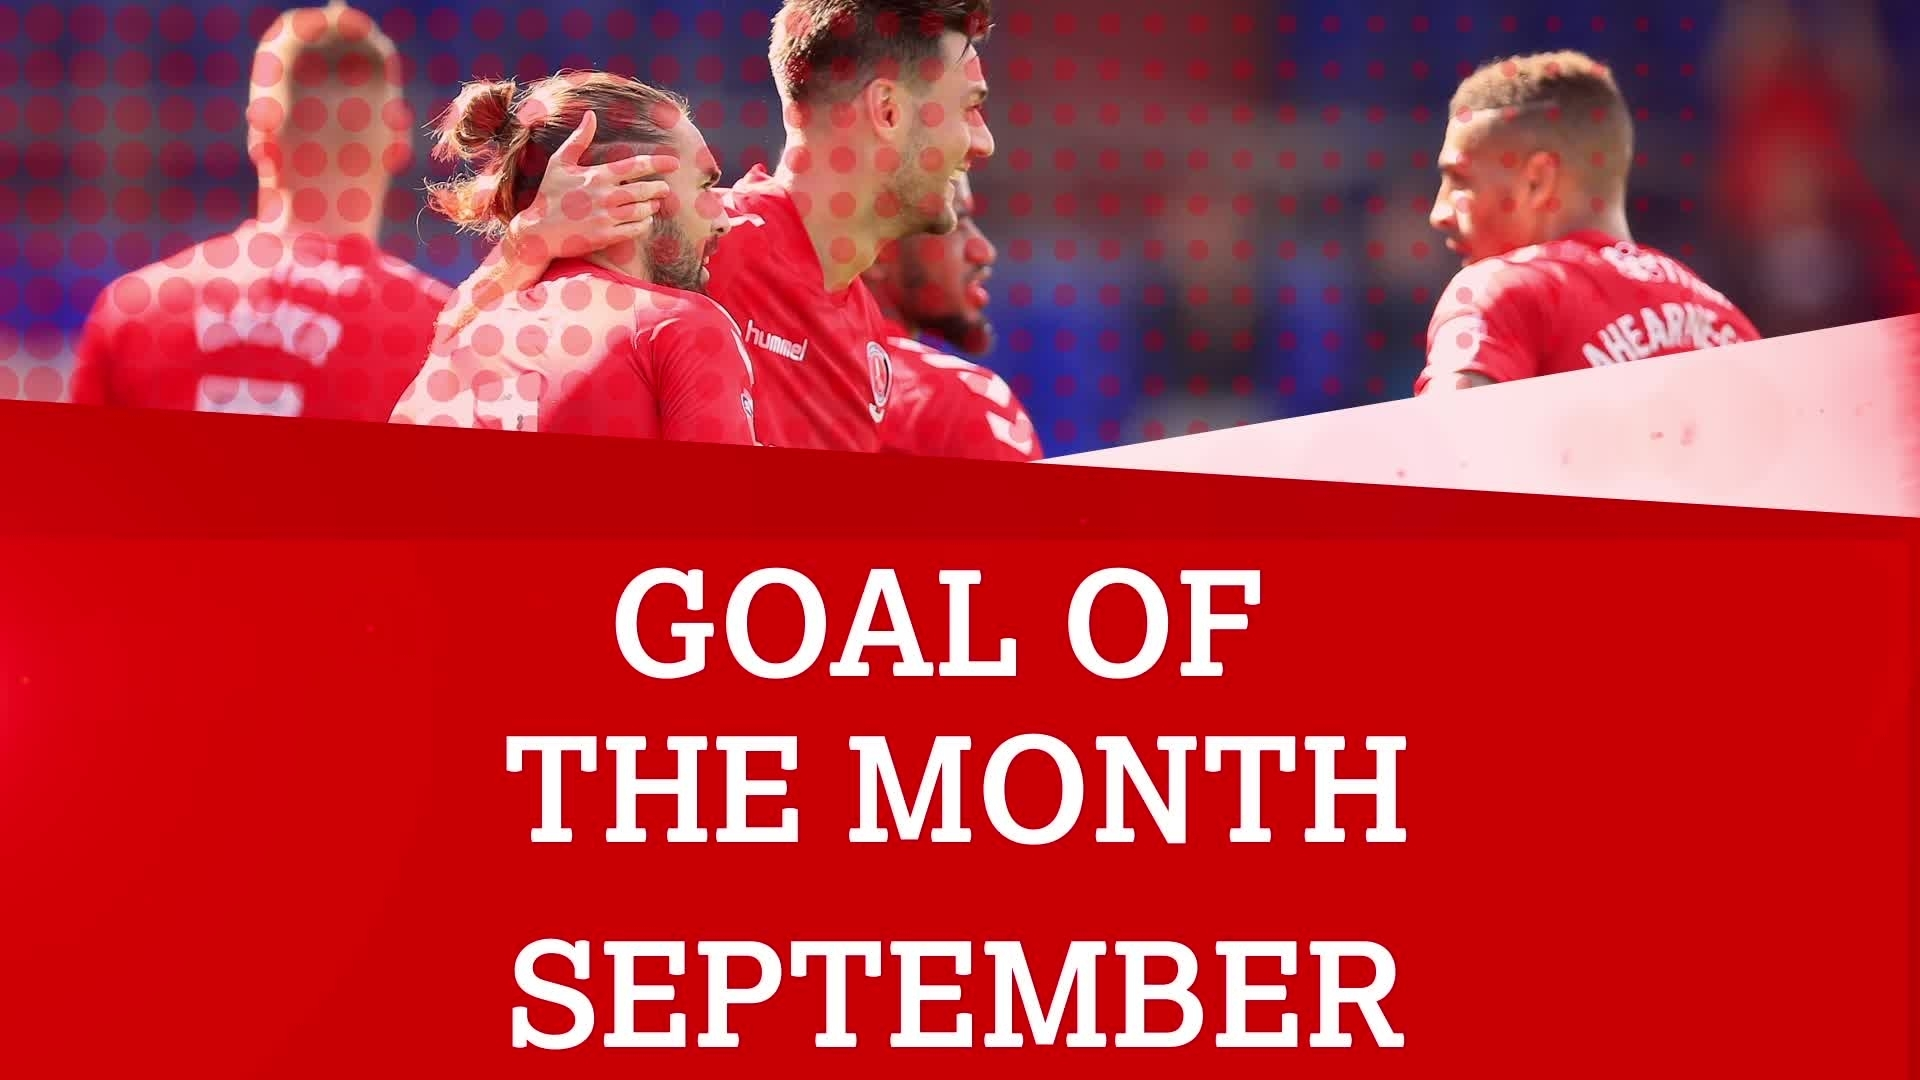 GOAL OF THE MONTH | September 2017